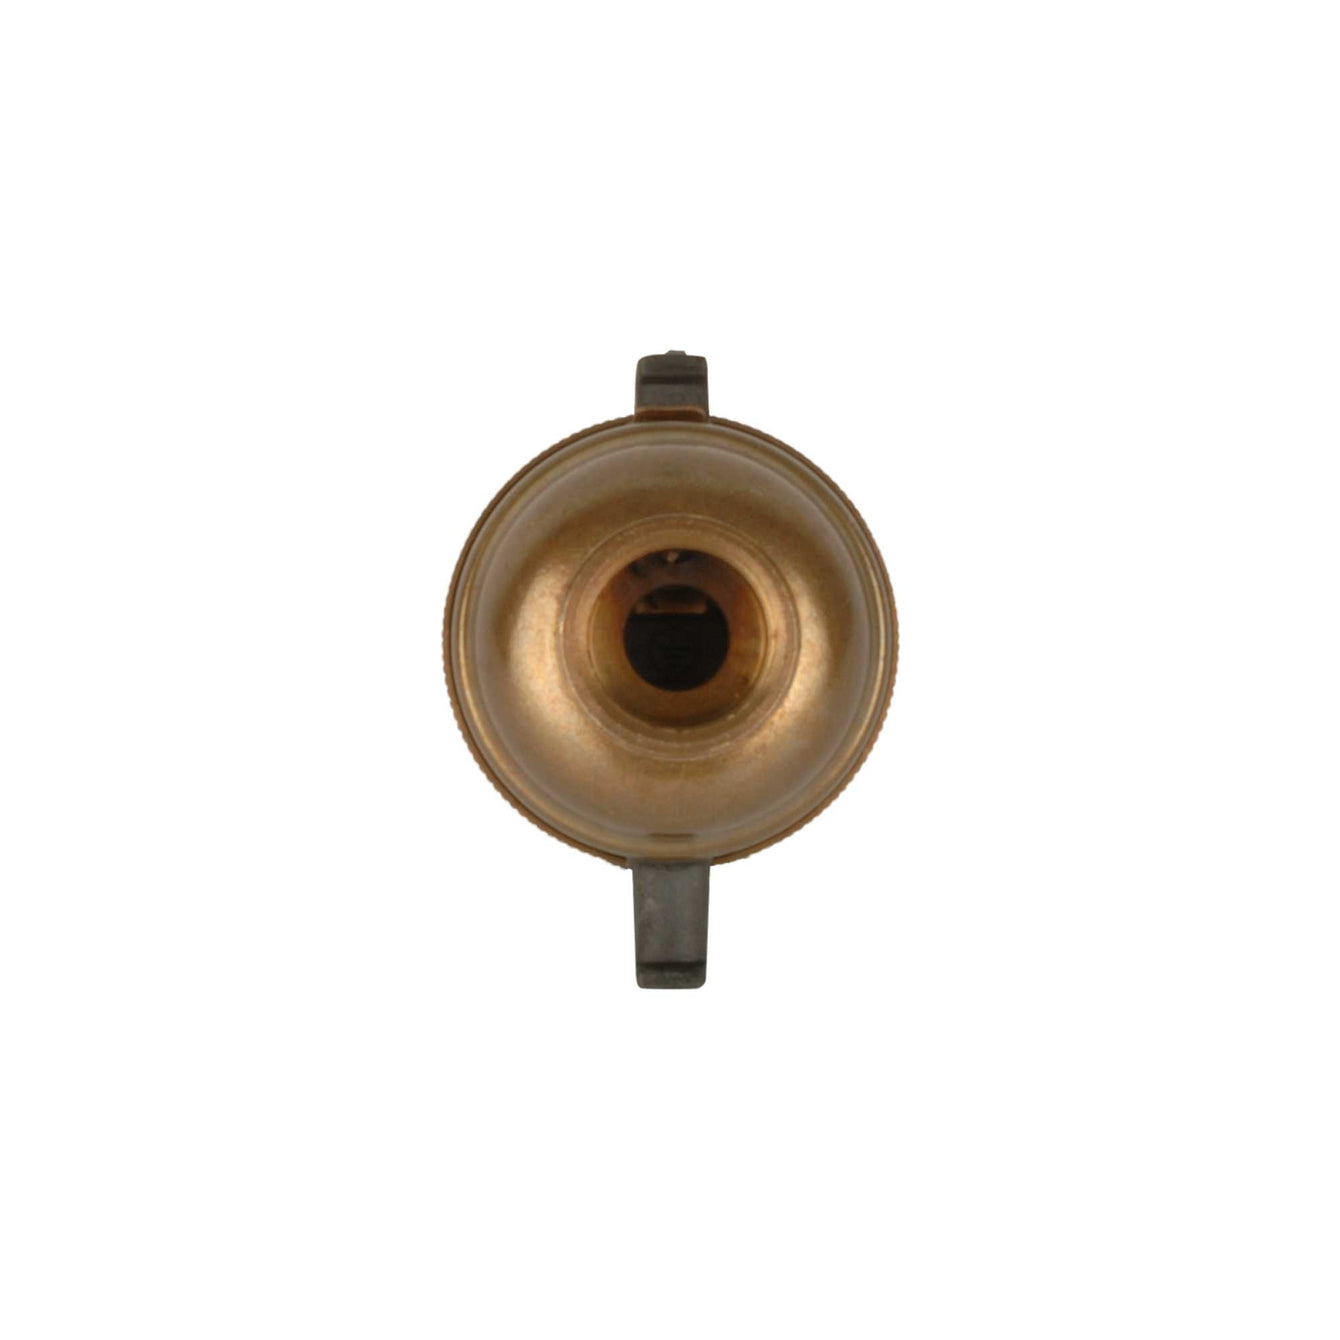 ElekTek Safety Switch Lamp Holder Bayonet Cap B22 10mm or Half Inch Entry With Shade Ring Solid Brass - Buy It Better Chrome / Half Inch